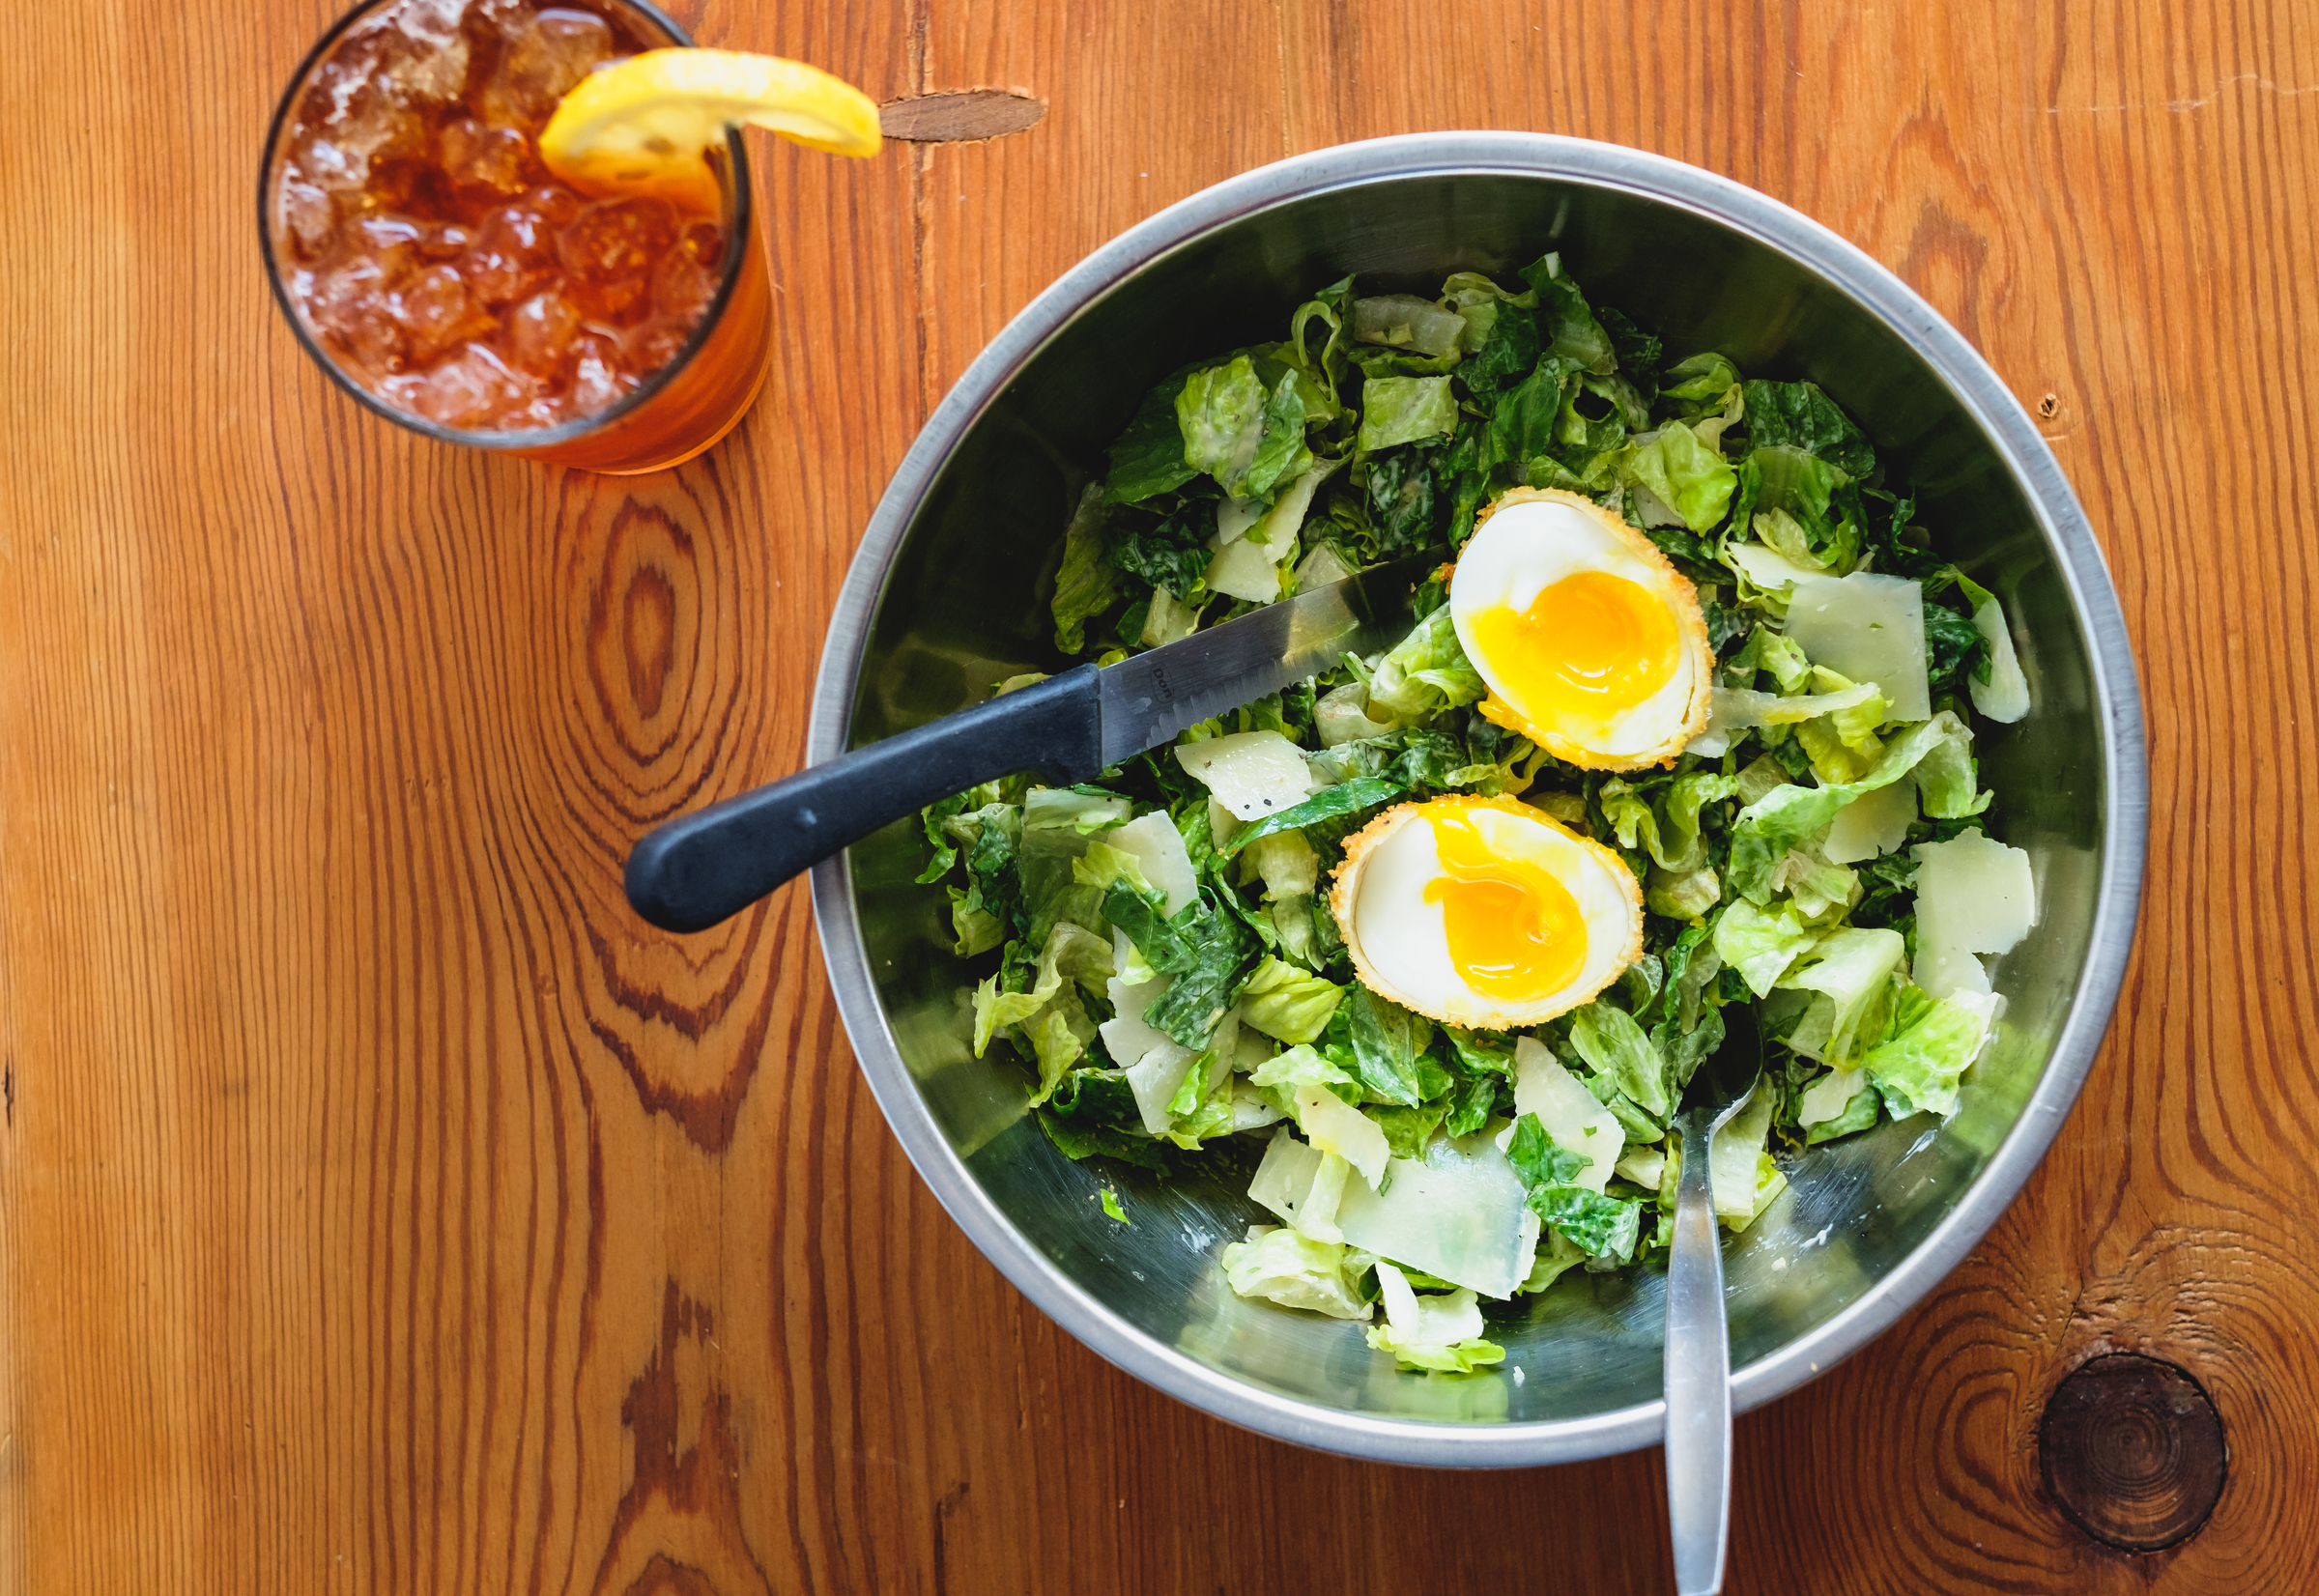 We worked fast with the Caesar salad and fried egg that still had a runny yolk. We couldn't have the yolk filming over!